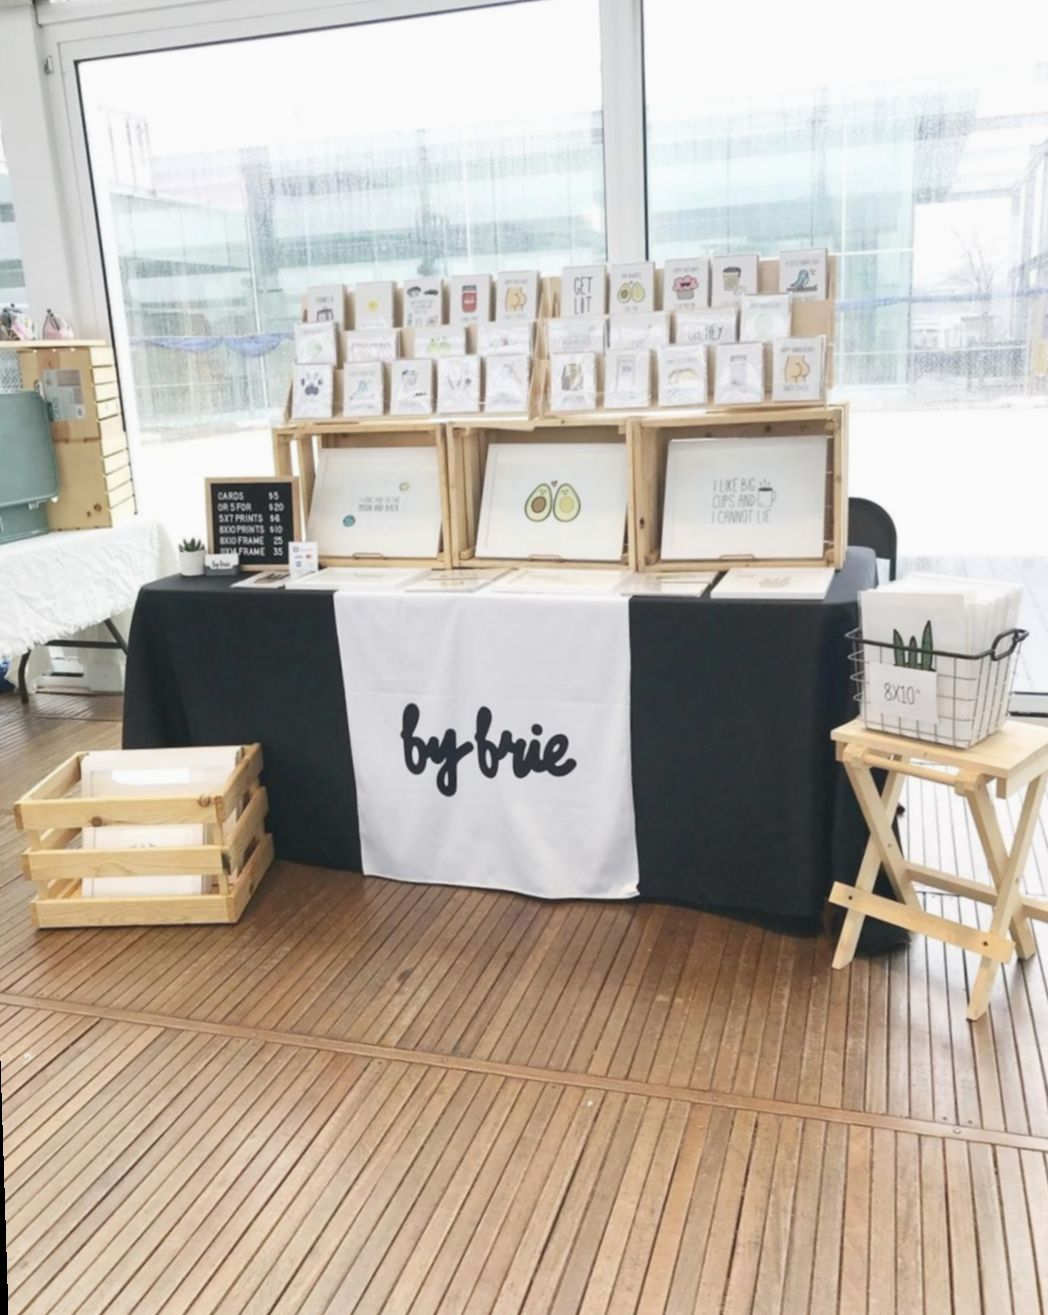 Diy Table Cloth For Craft Show Nature Cabintinyhousebuilder Minimalist Craft Fair Booth Display Craft Booth Displays Craft Stall Display